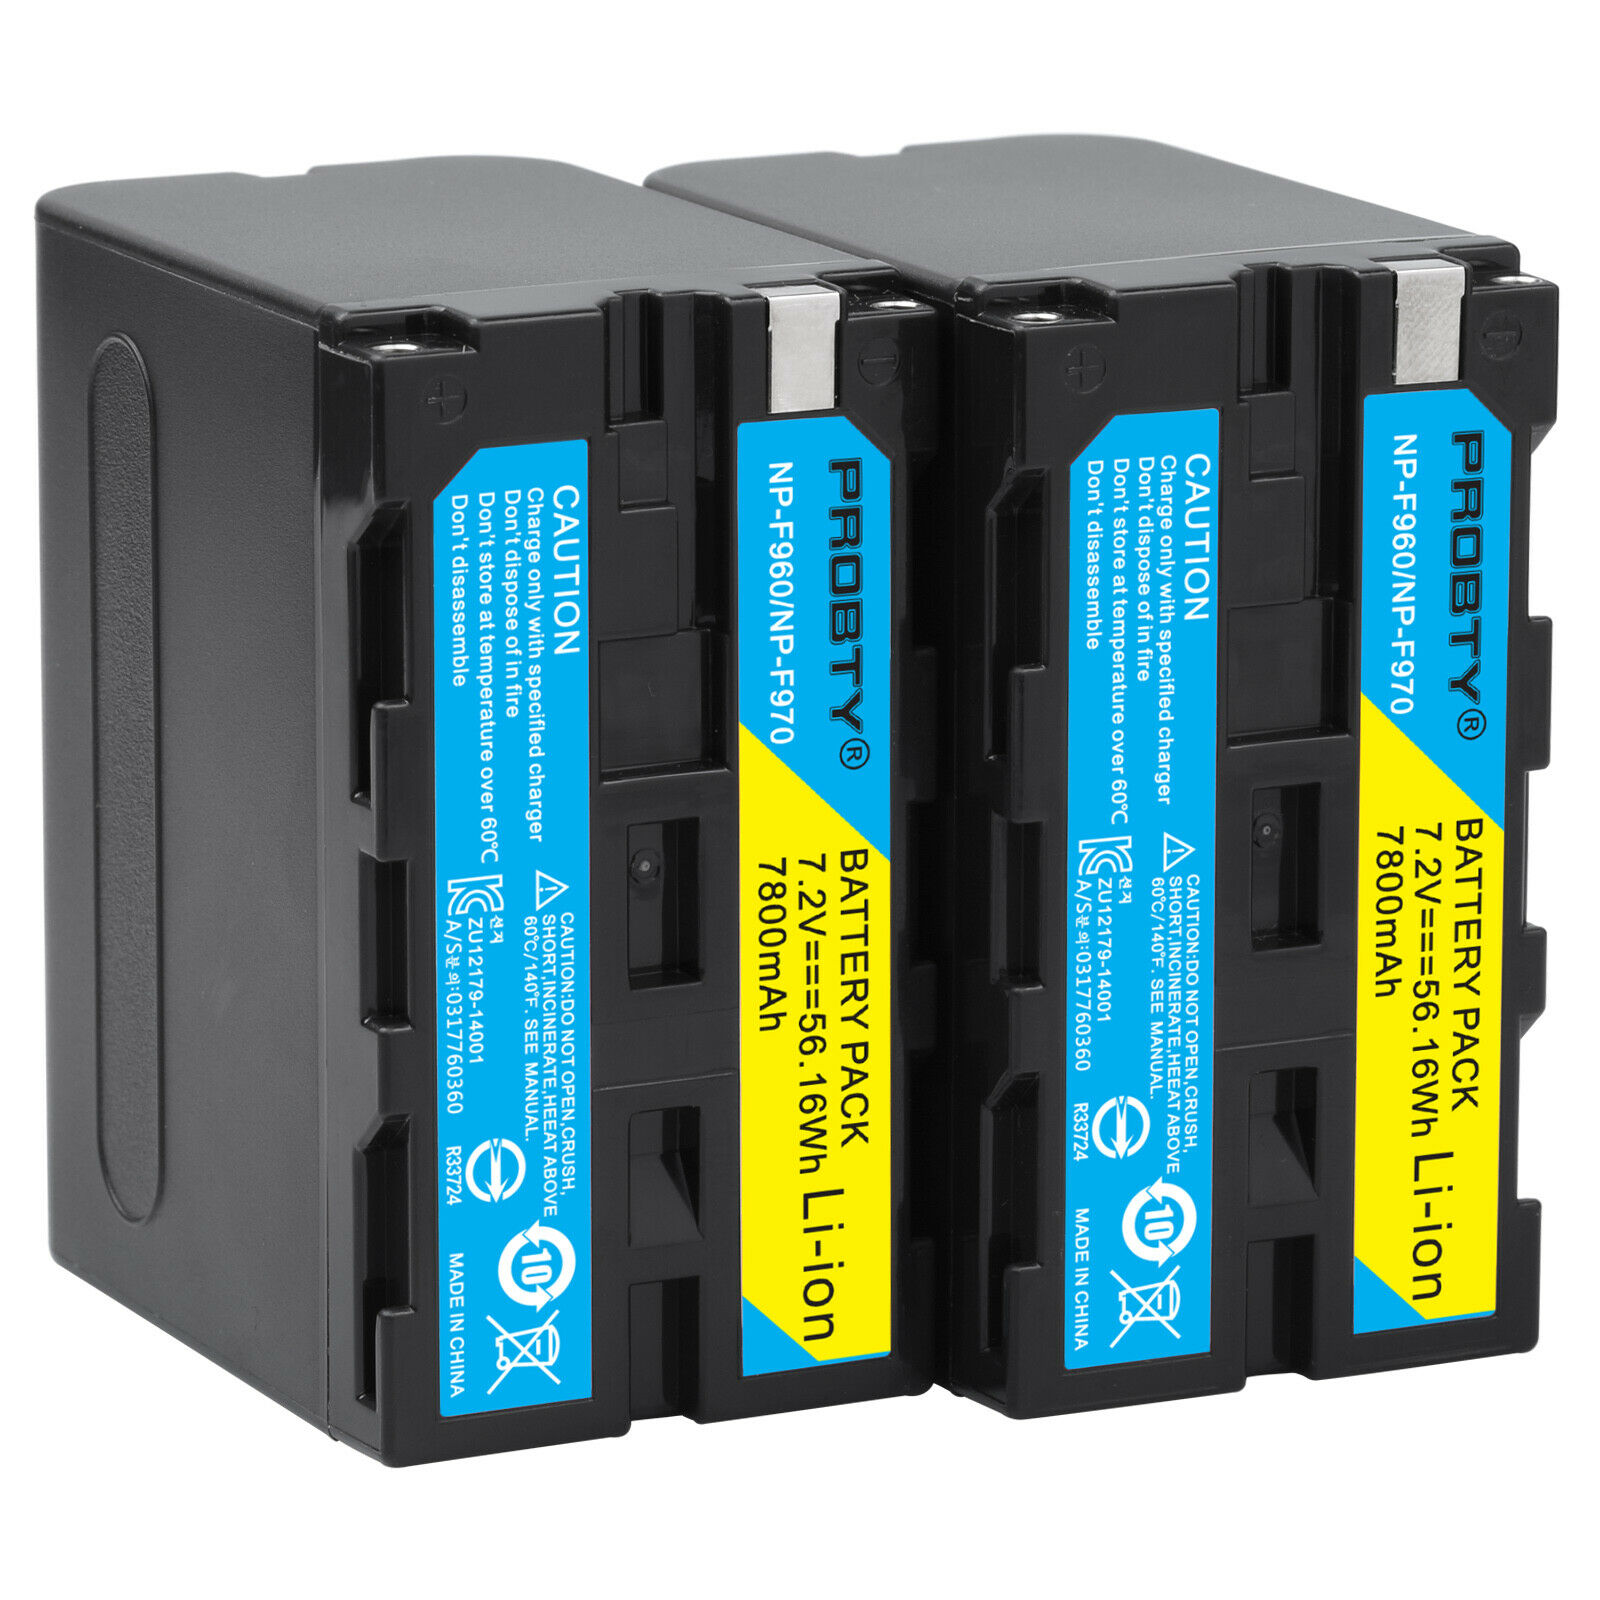 2pcs  7800mAh NP F960 NP F970 batteries / NP F960 battery For Sony NP F550 F550 NP F770 NP F750 F960 F970 free shipping-in Digital Batteries from Consumer Electronics    1